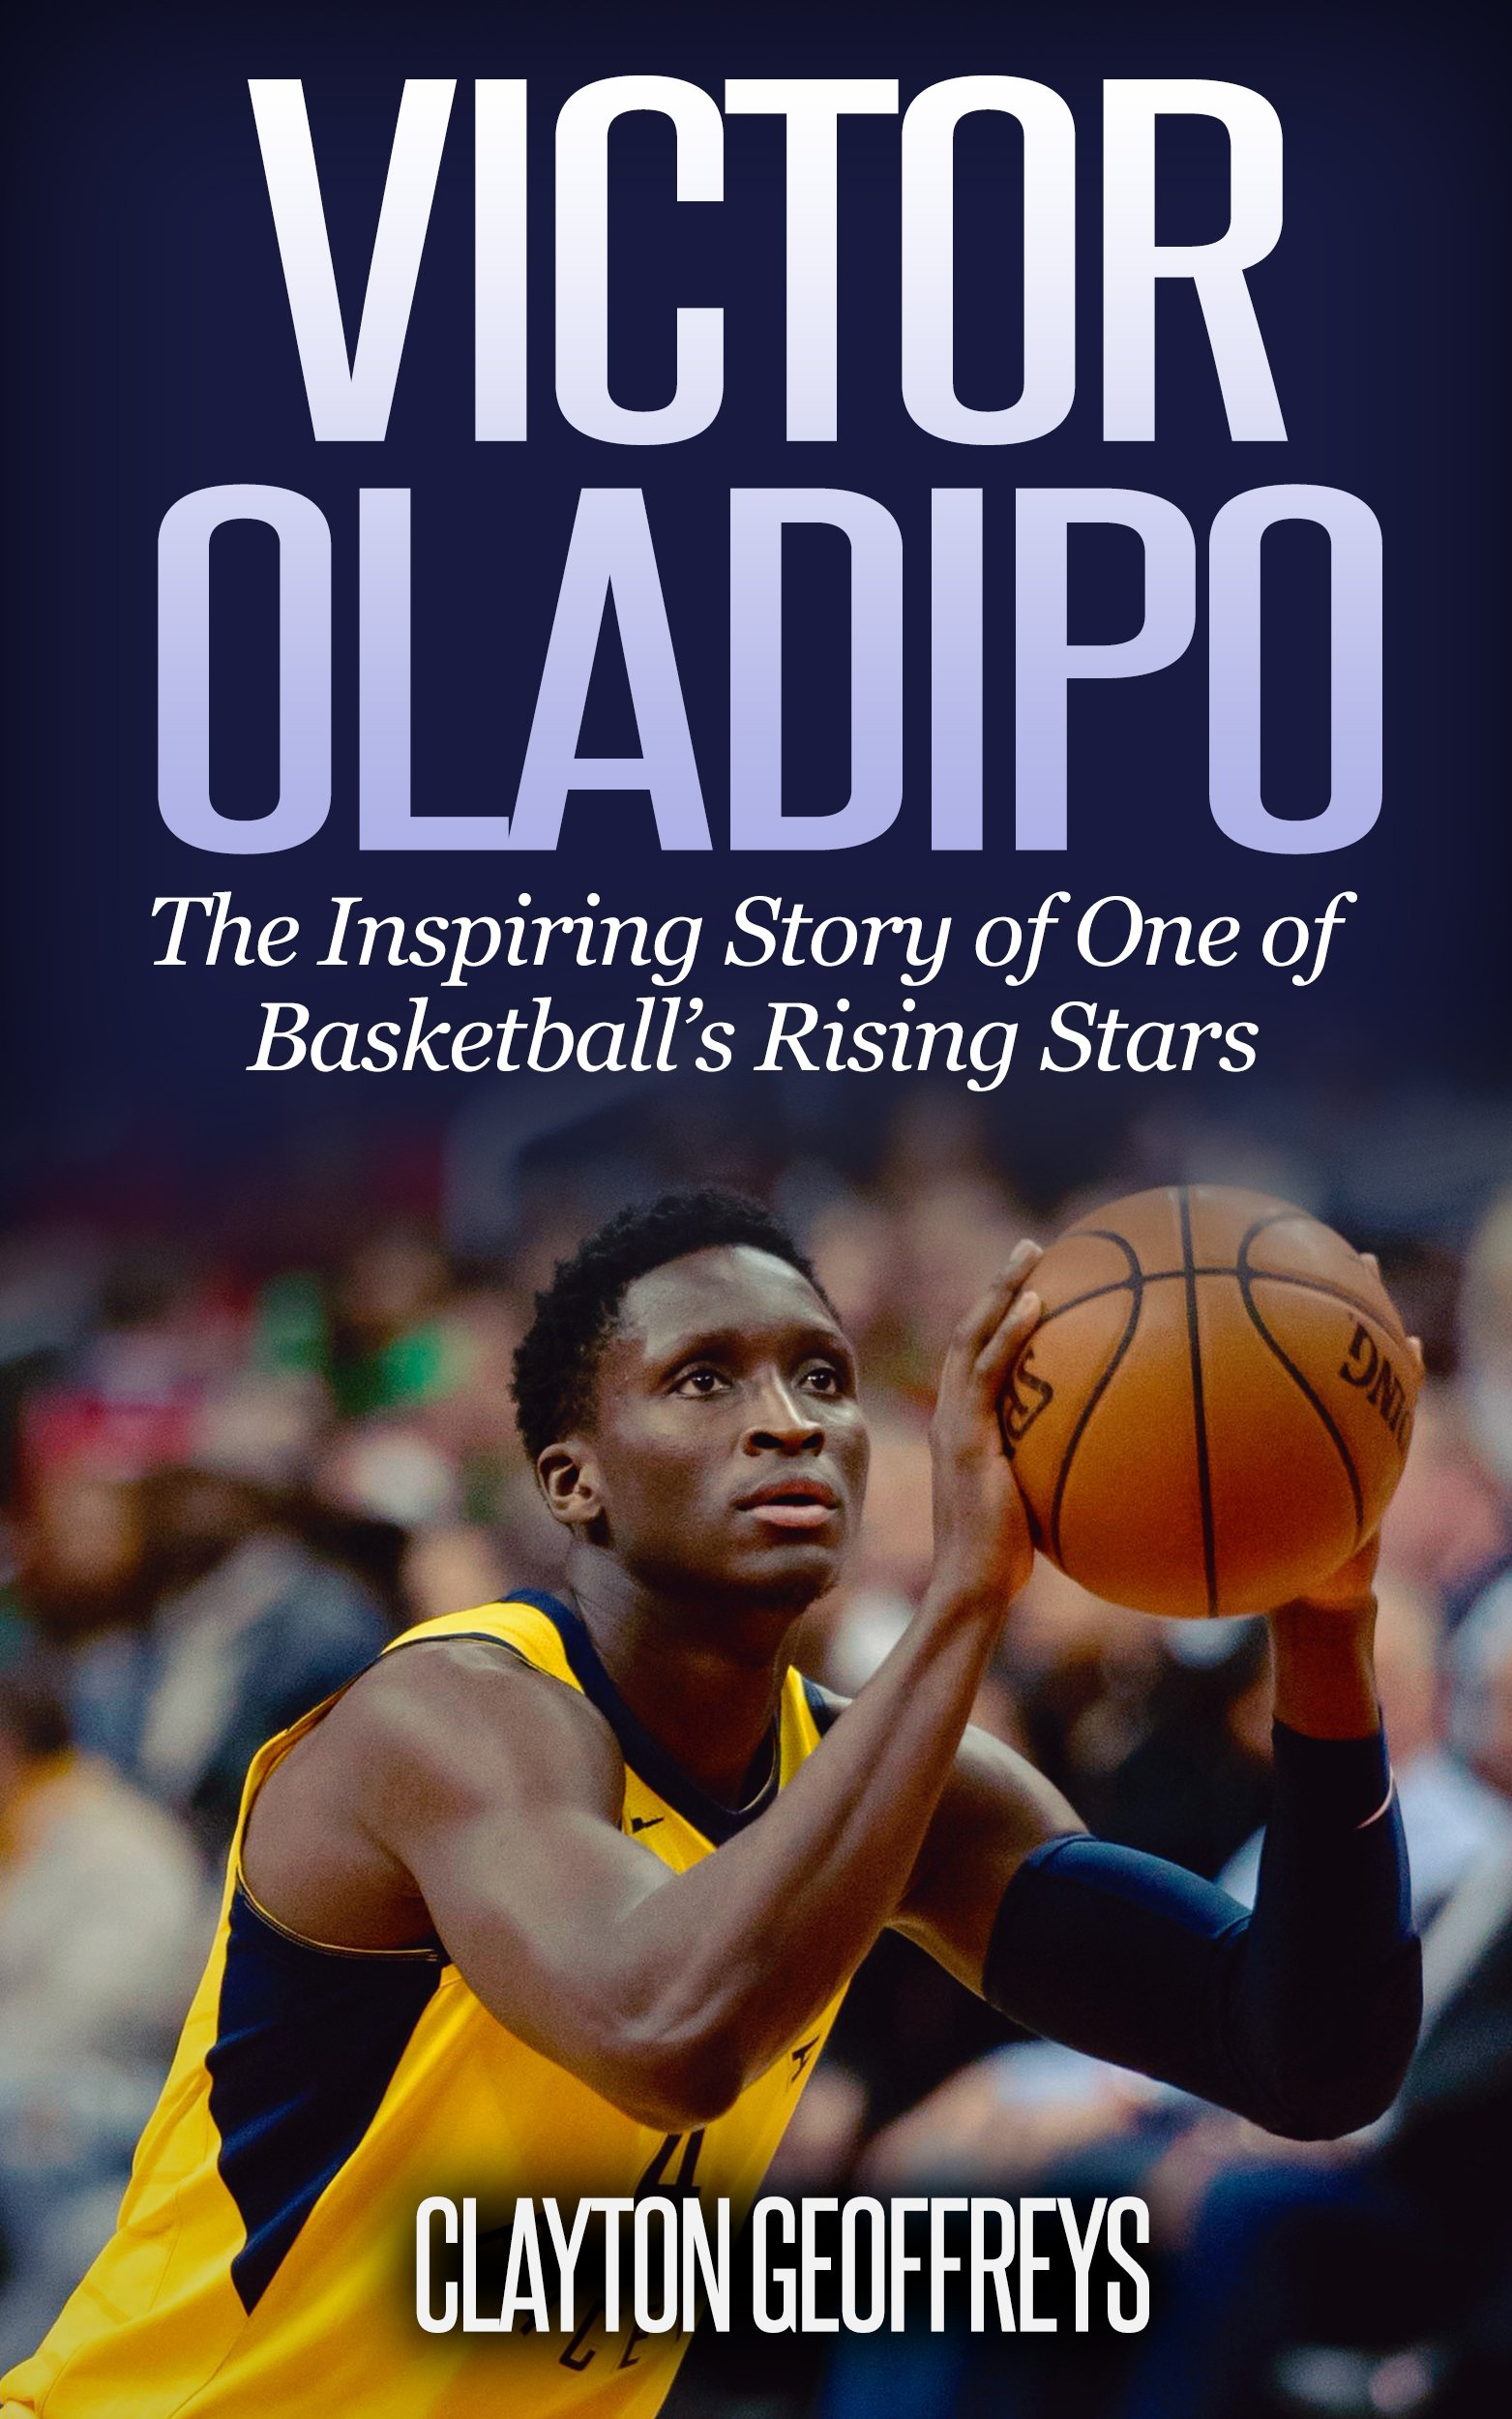 Victor Oladipo: The Inspiring Story of One of Basketball's Rising Stars (Basketball Biography Books) por Clayton Geoffreys